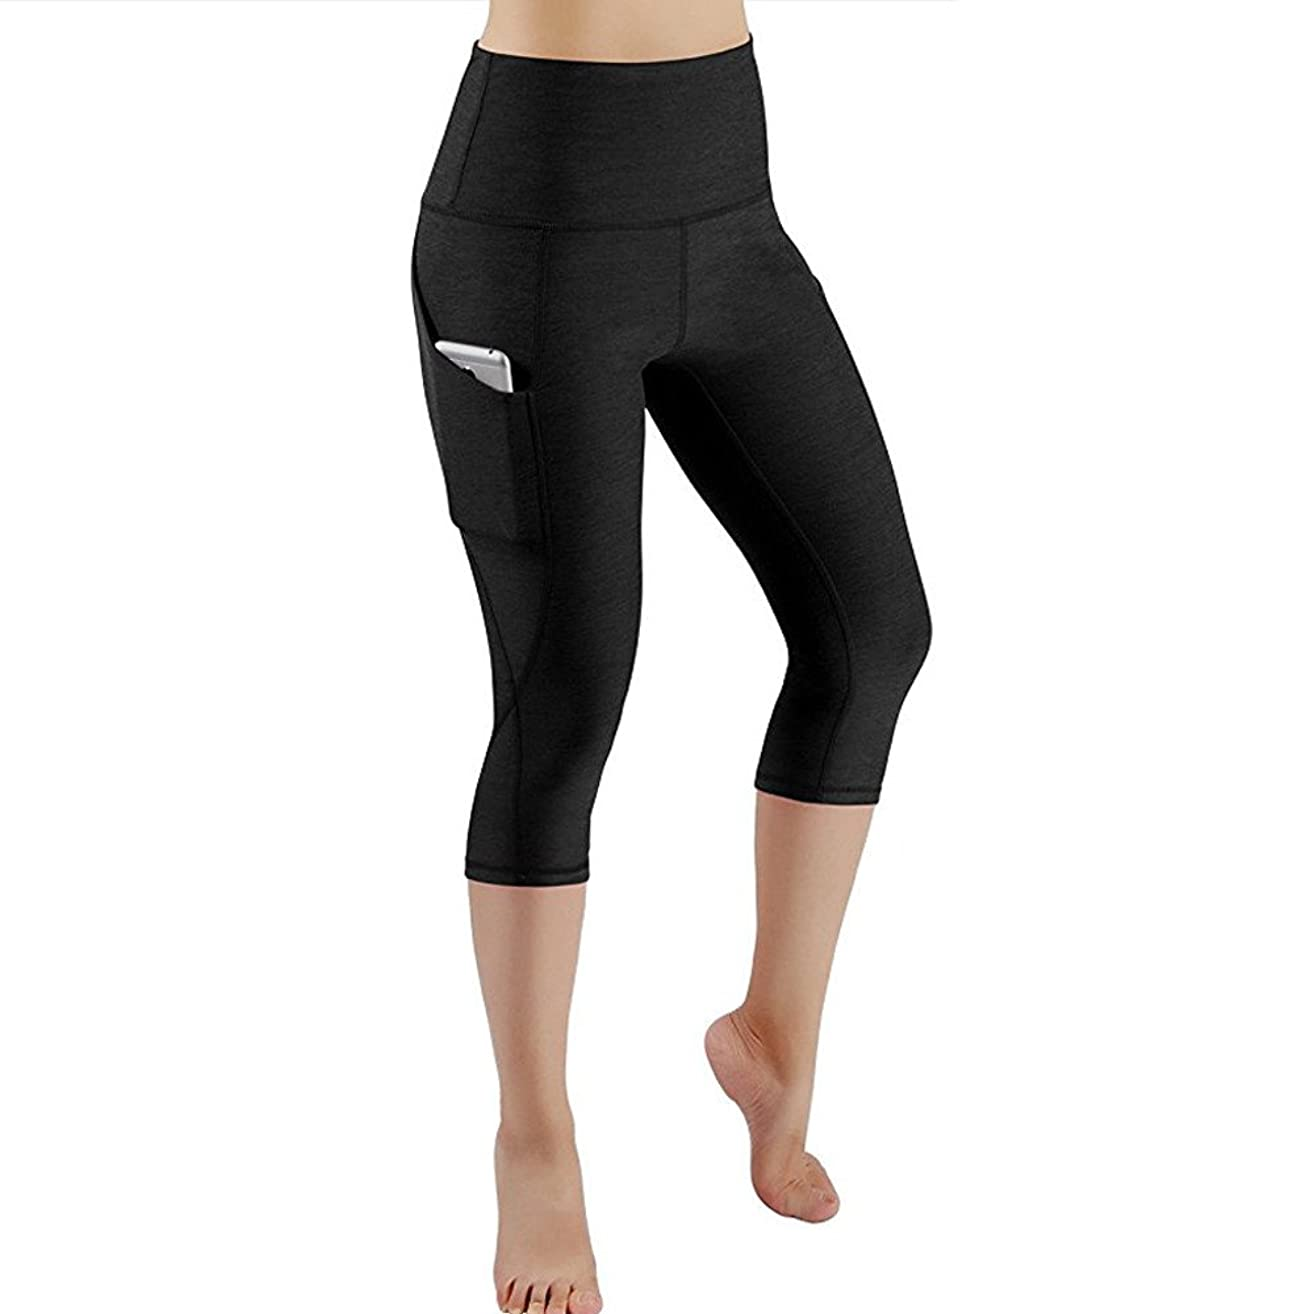 Letter Yoga Pants,Women's Fashion Workout Leggings with Pocket Fitness Sports Gym Running Yoga Athletic Pants Yamally